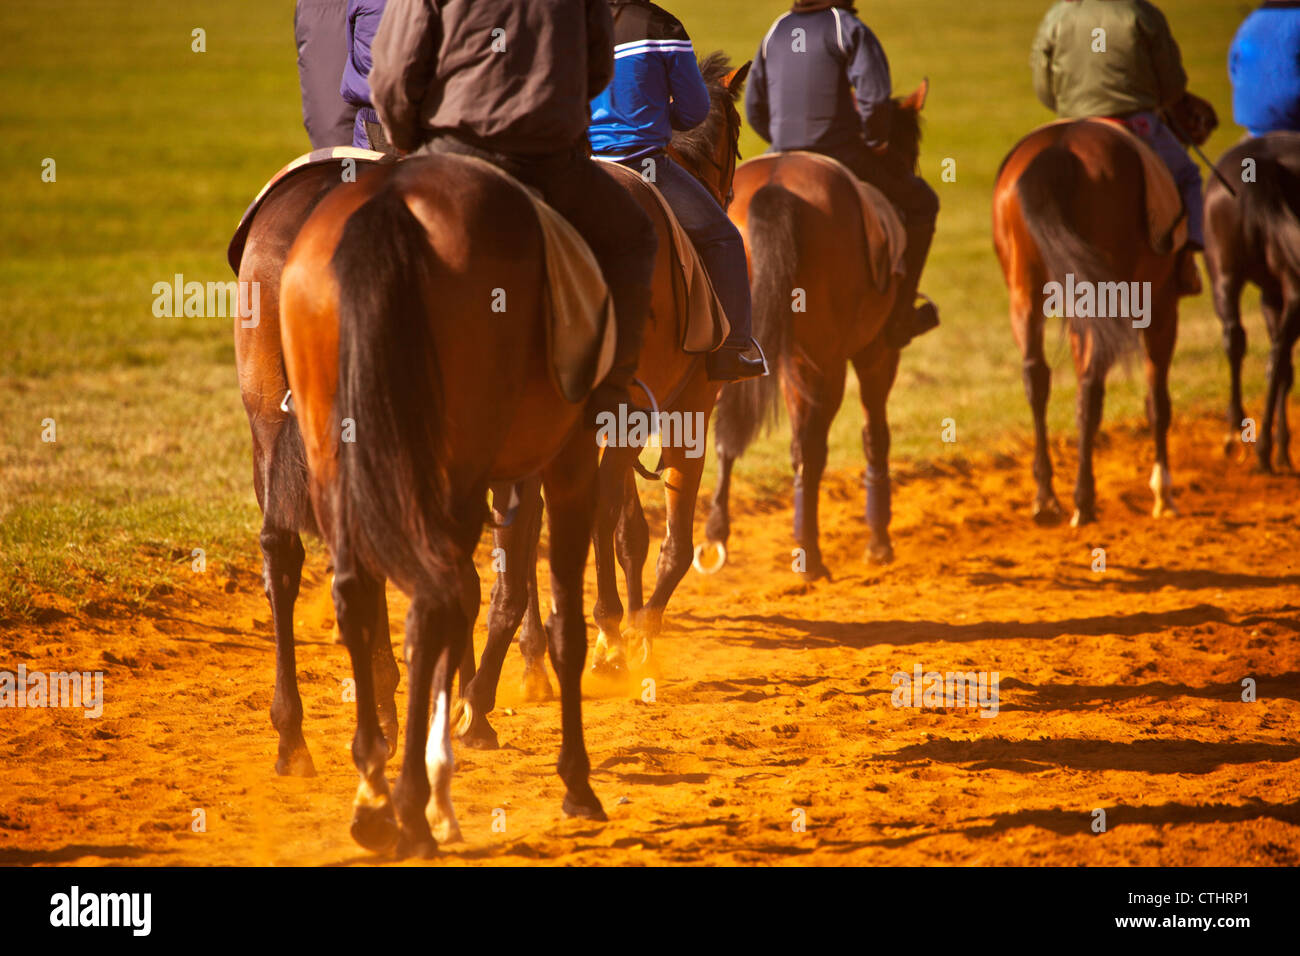 A string of racehorses walking back to the start line during training at the National Stud in Newmarket Stock Photo